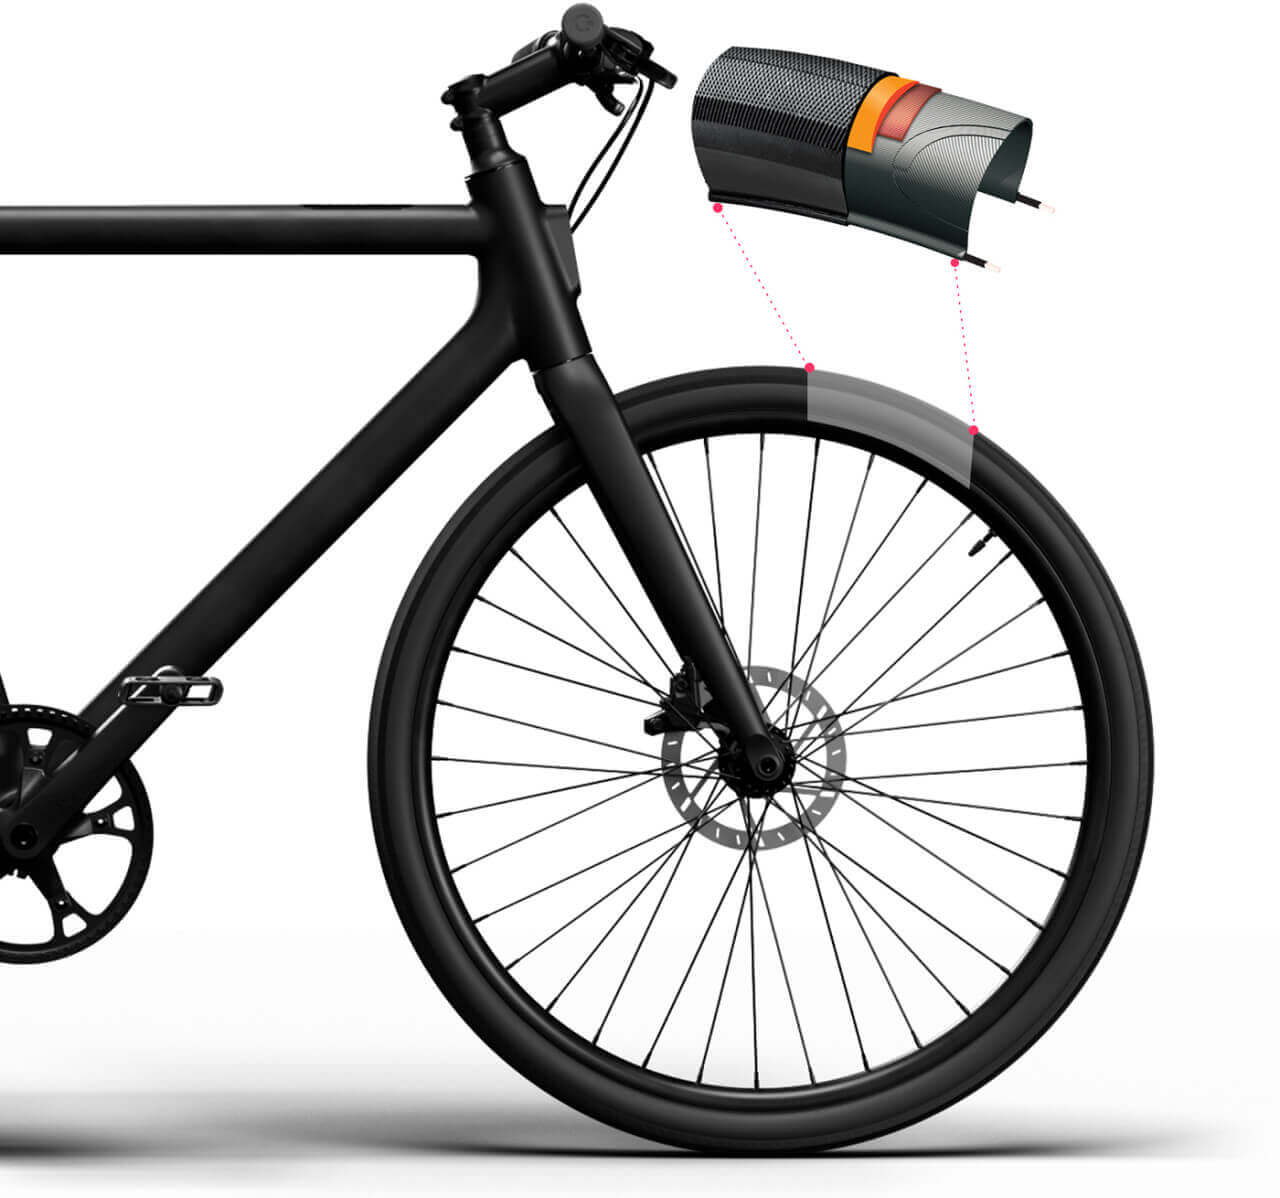 Cowboy e-bike - Puncture-resistant tires